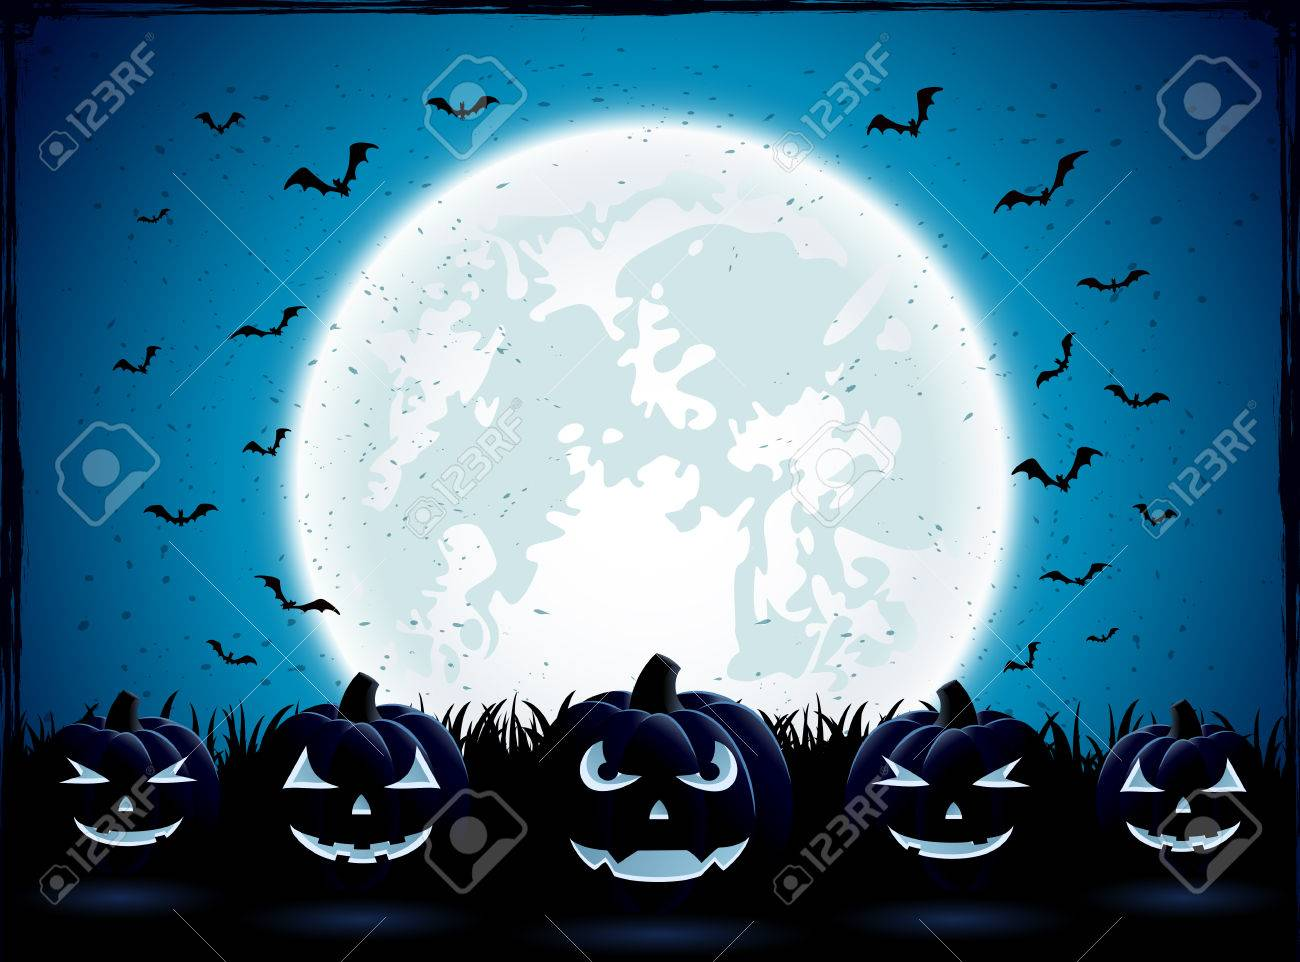 Halloween night with Moon and pumpkins in the grass, illustration. - 44926299